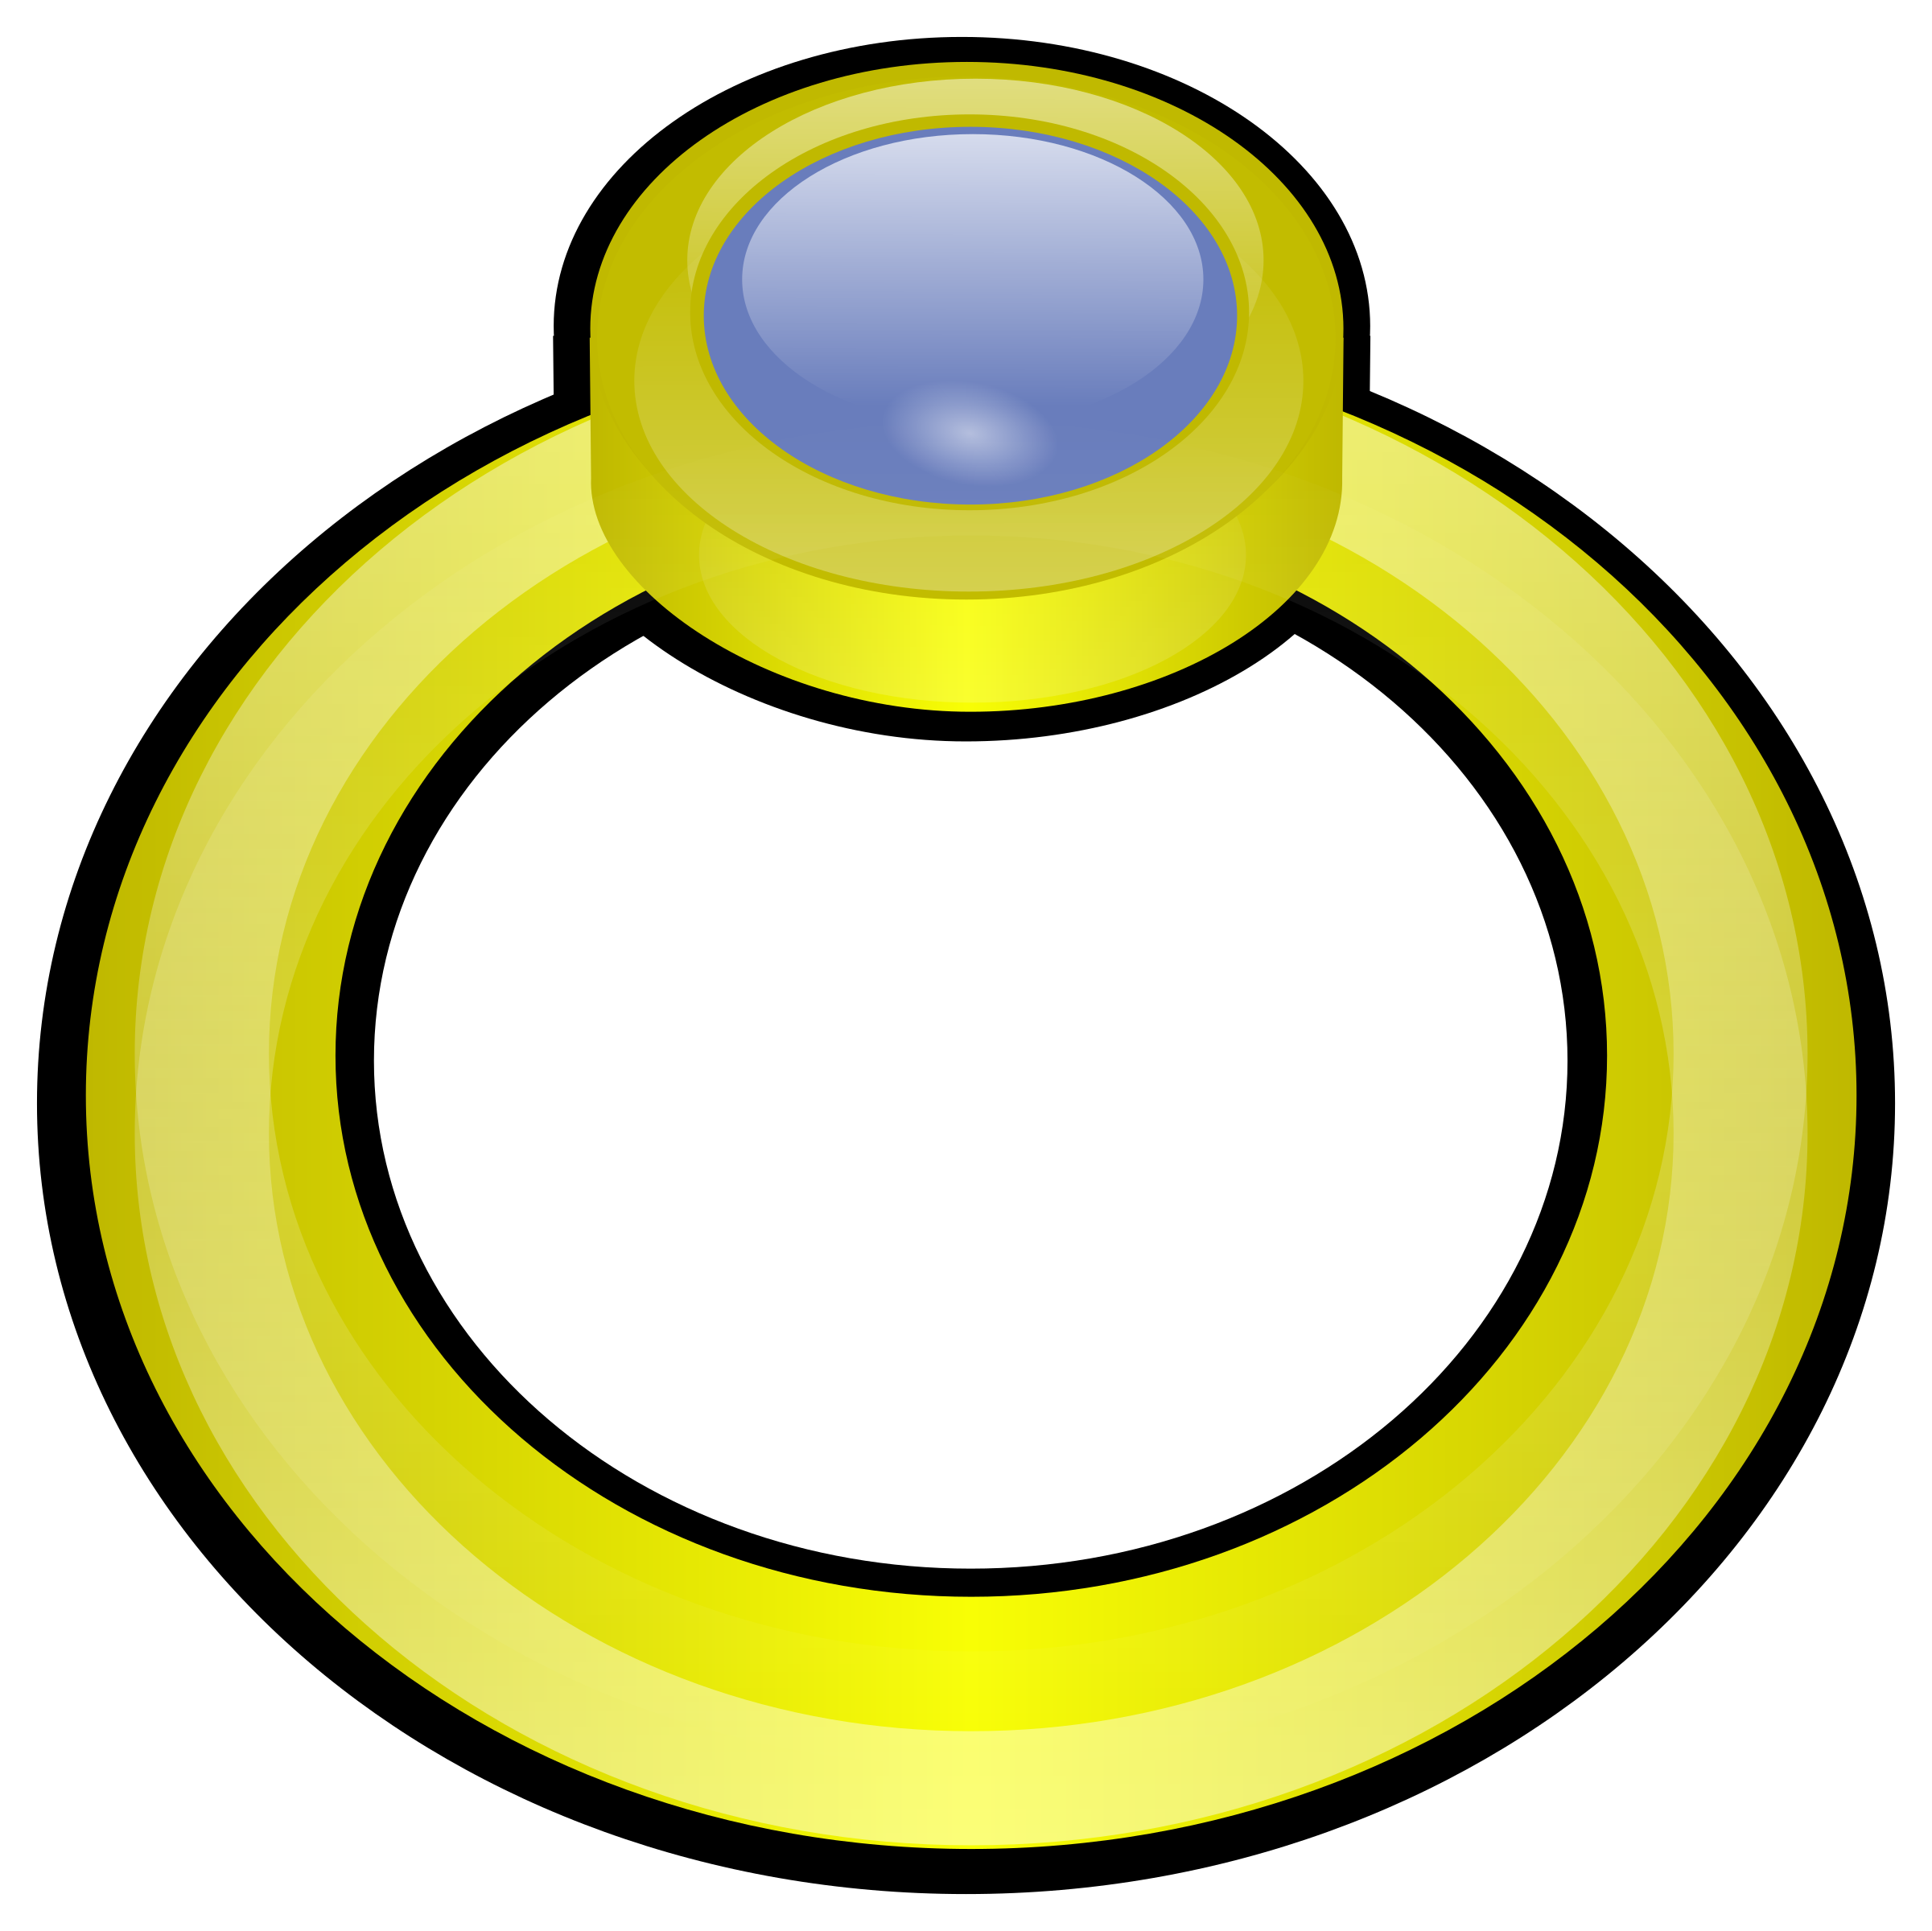 Ring by PeterM